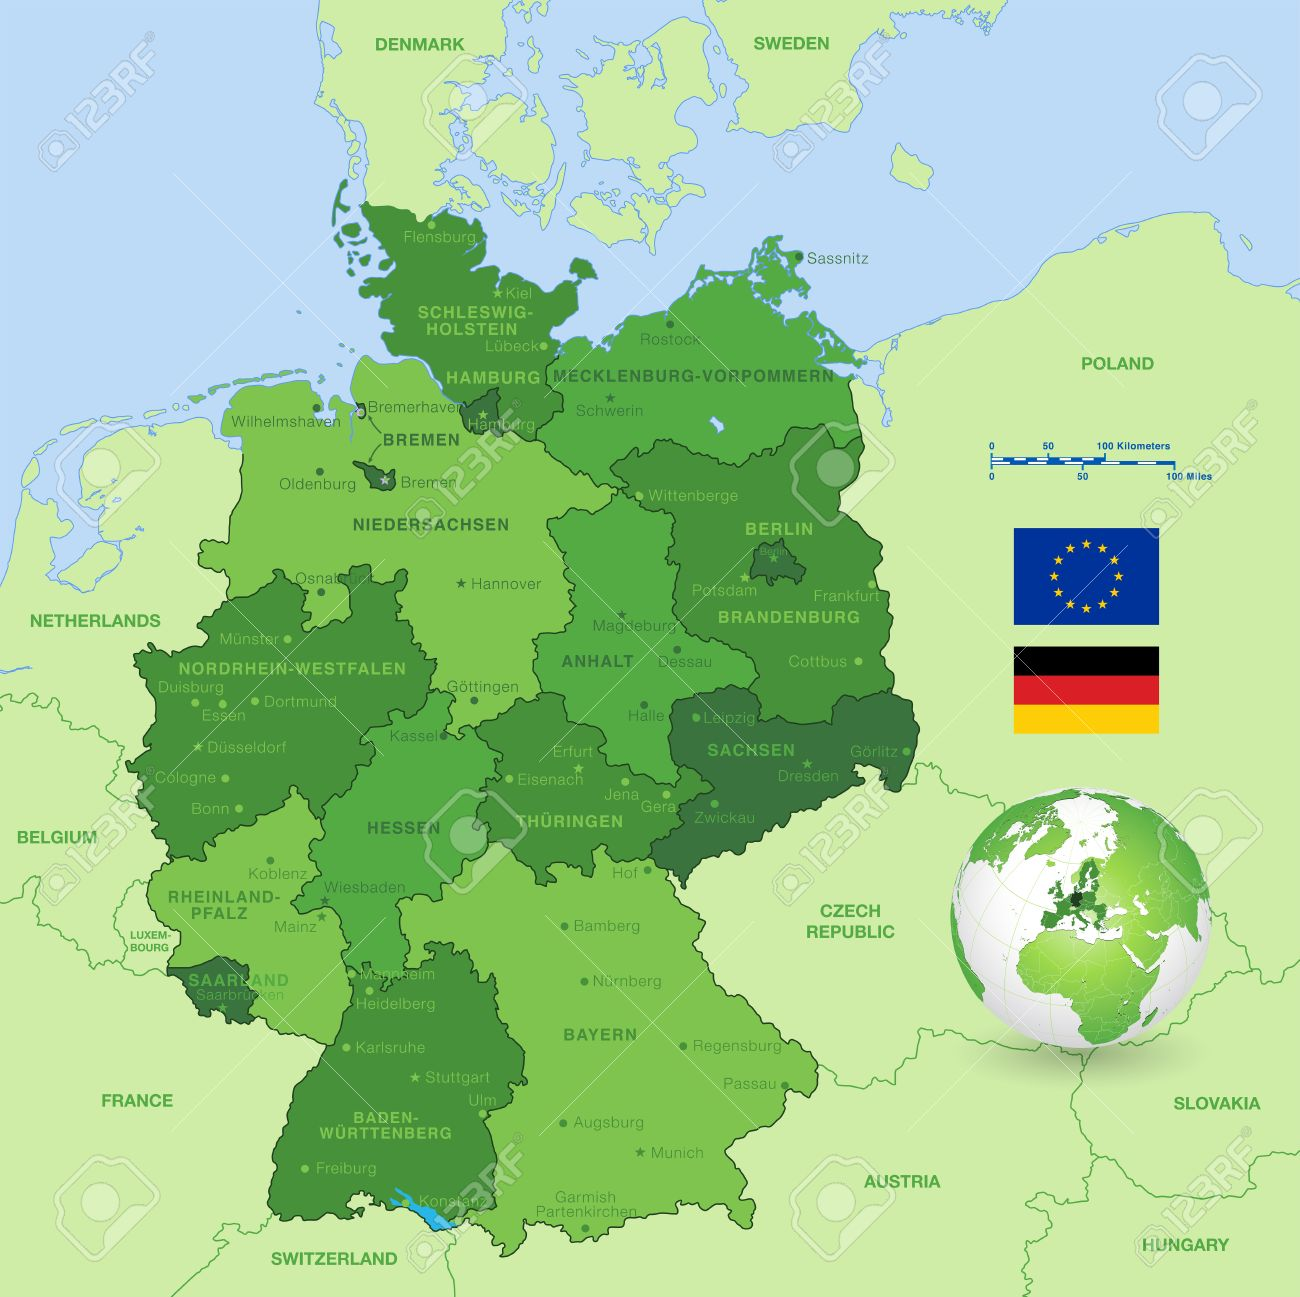 Map Of Germany Major Cities.A High Detail Vector Map Of Germany States And Major Cities